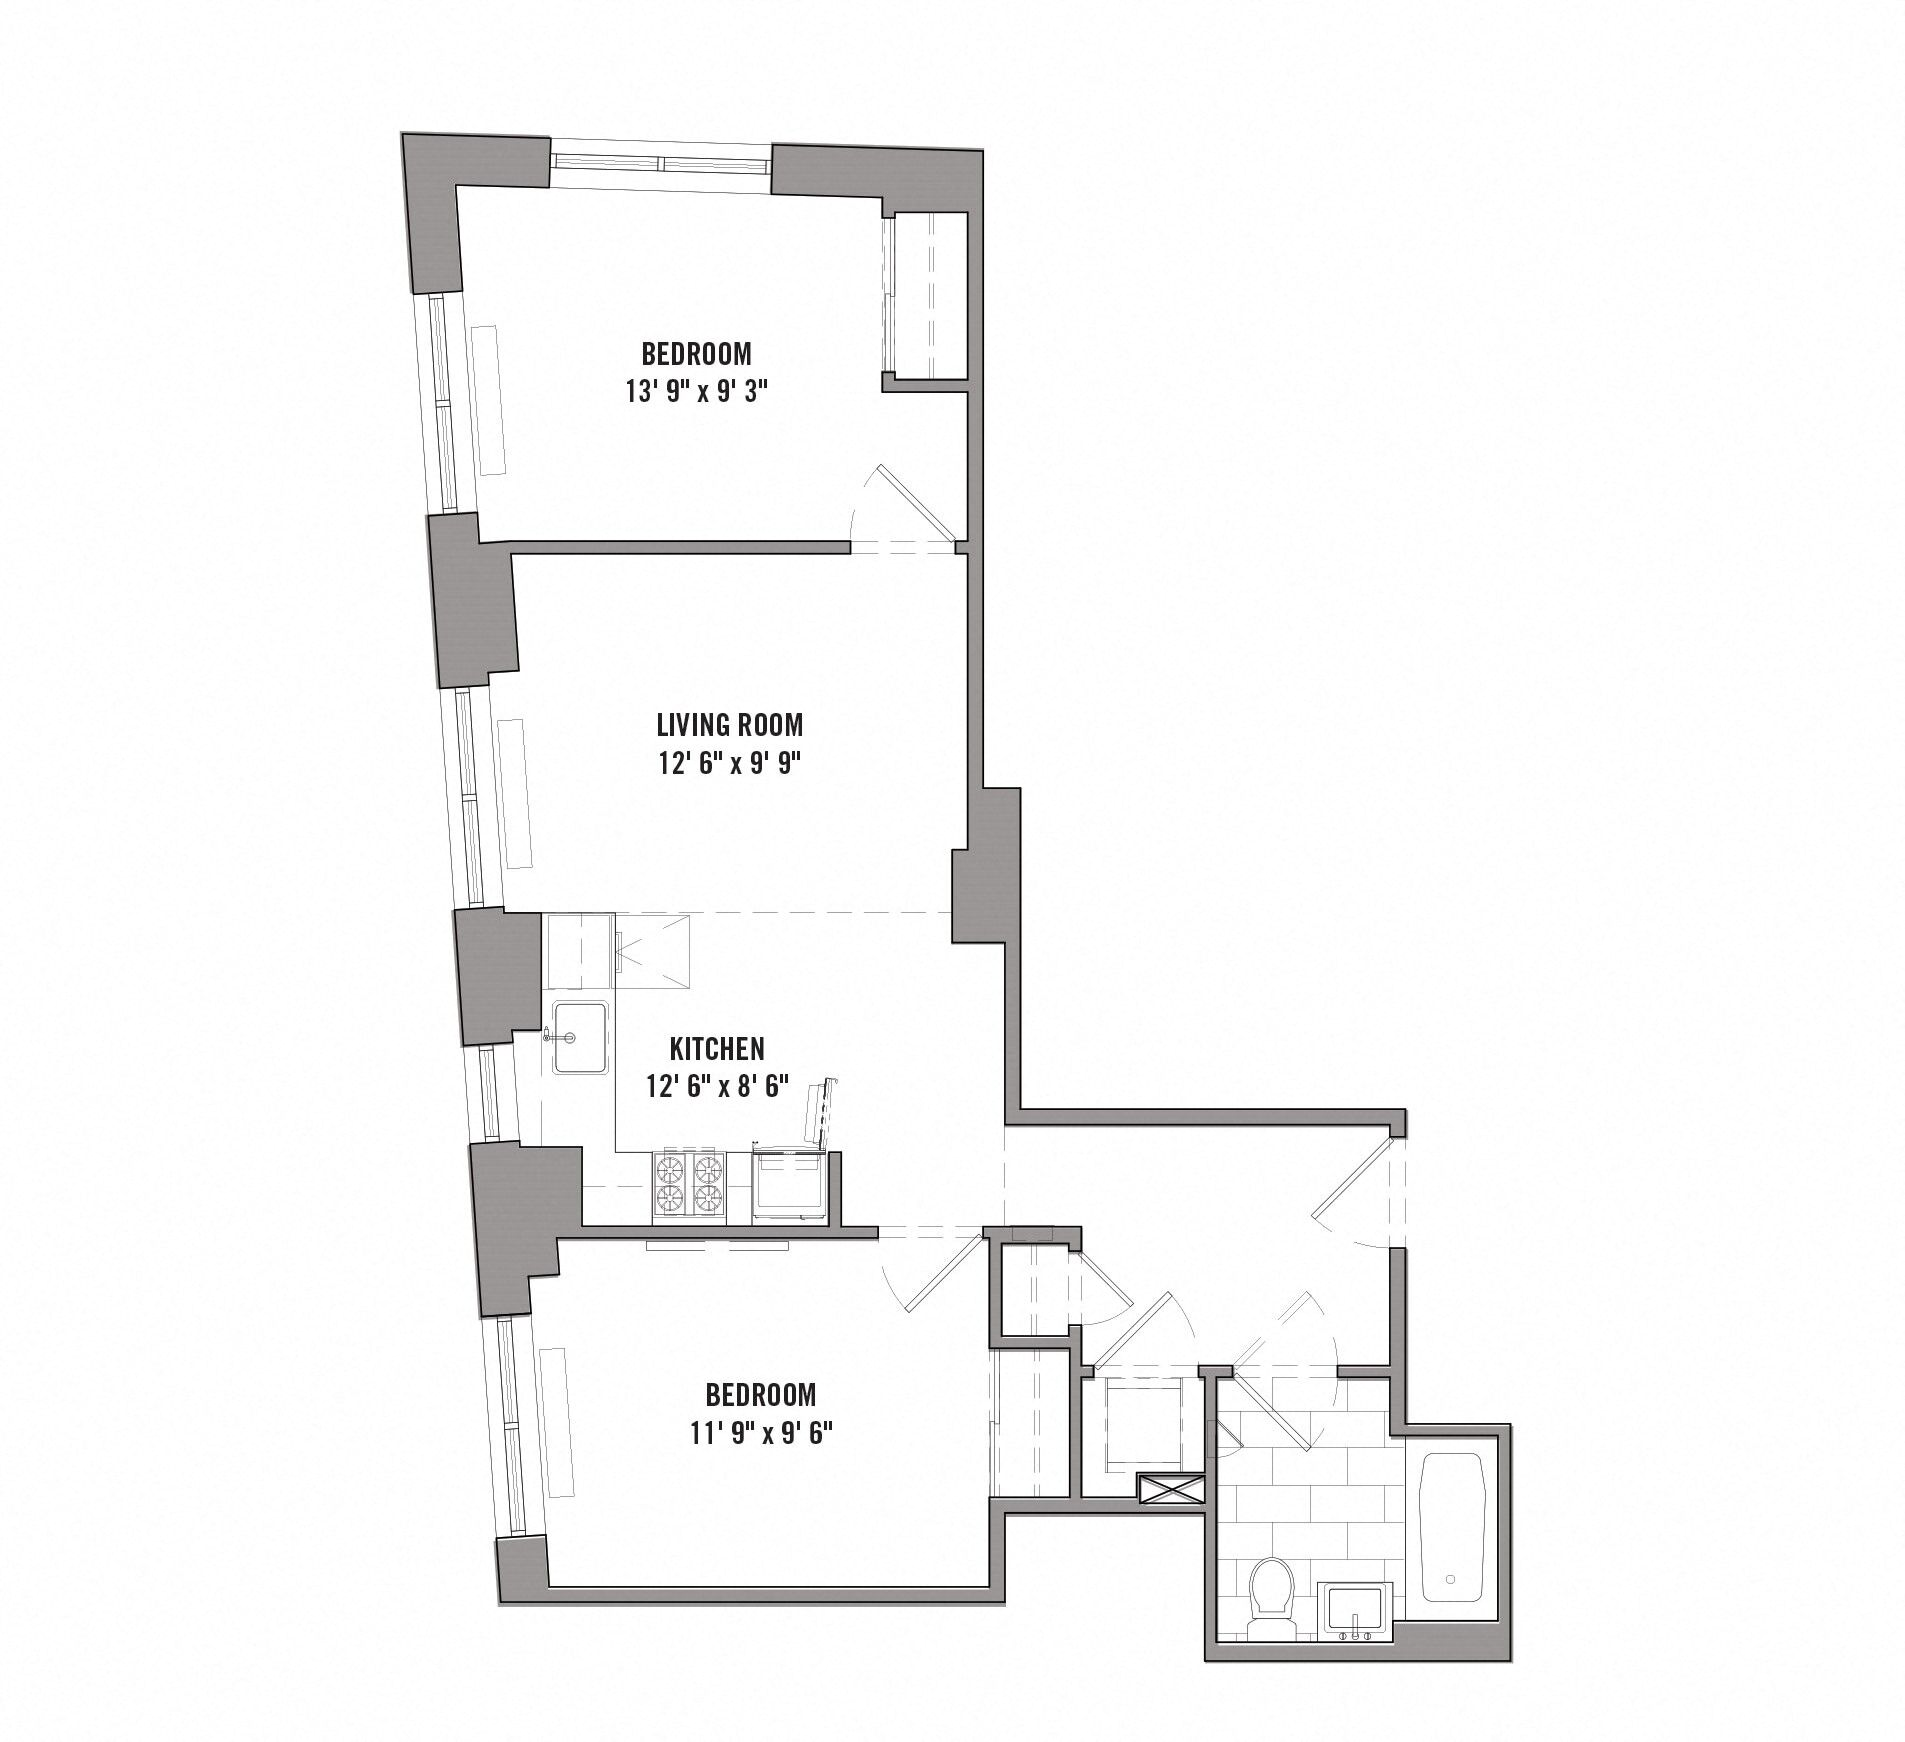 Floor plan diagram for unit E 2-15. 2 bedrooms, 1 bathroom, kitchen, and living room.